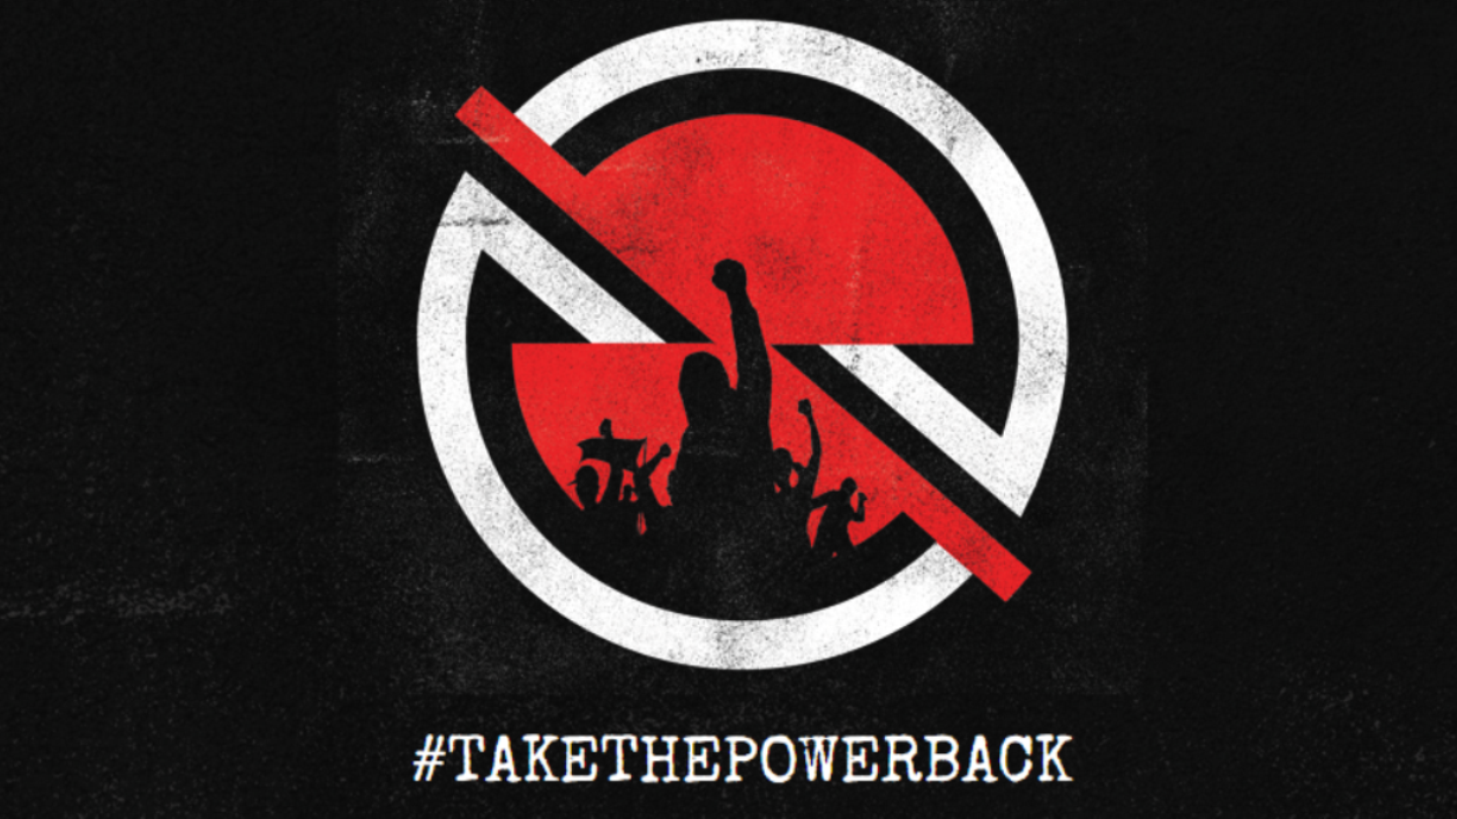 The logo featured on the Rage Against The Machine website (ProphetsOfRage.com)